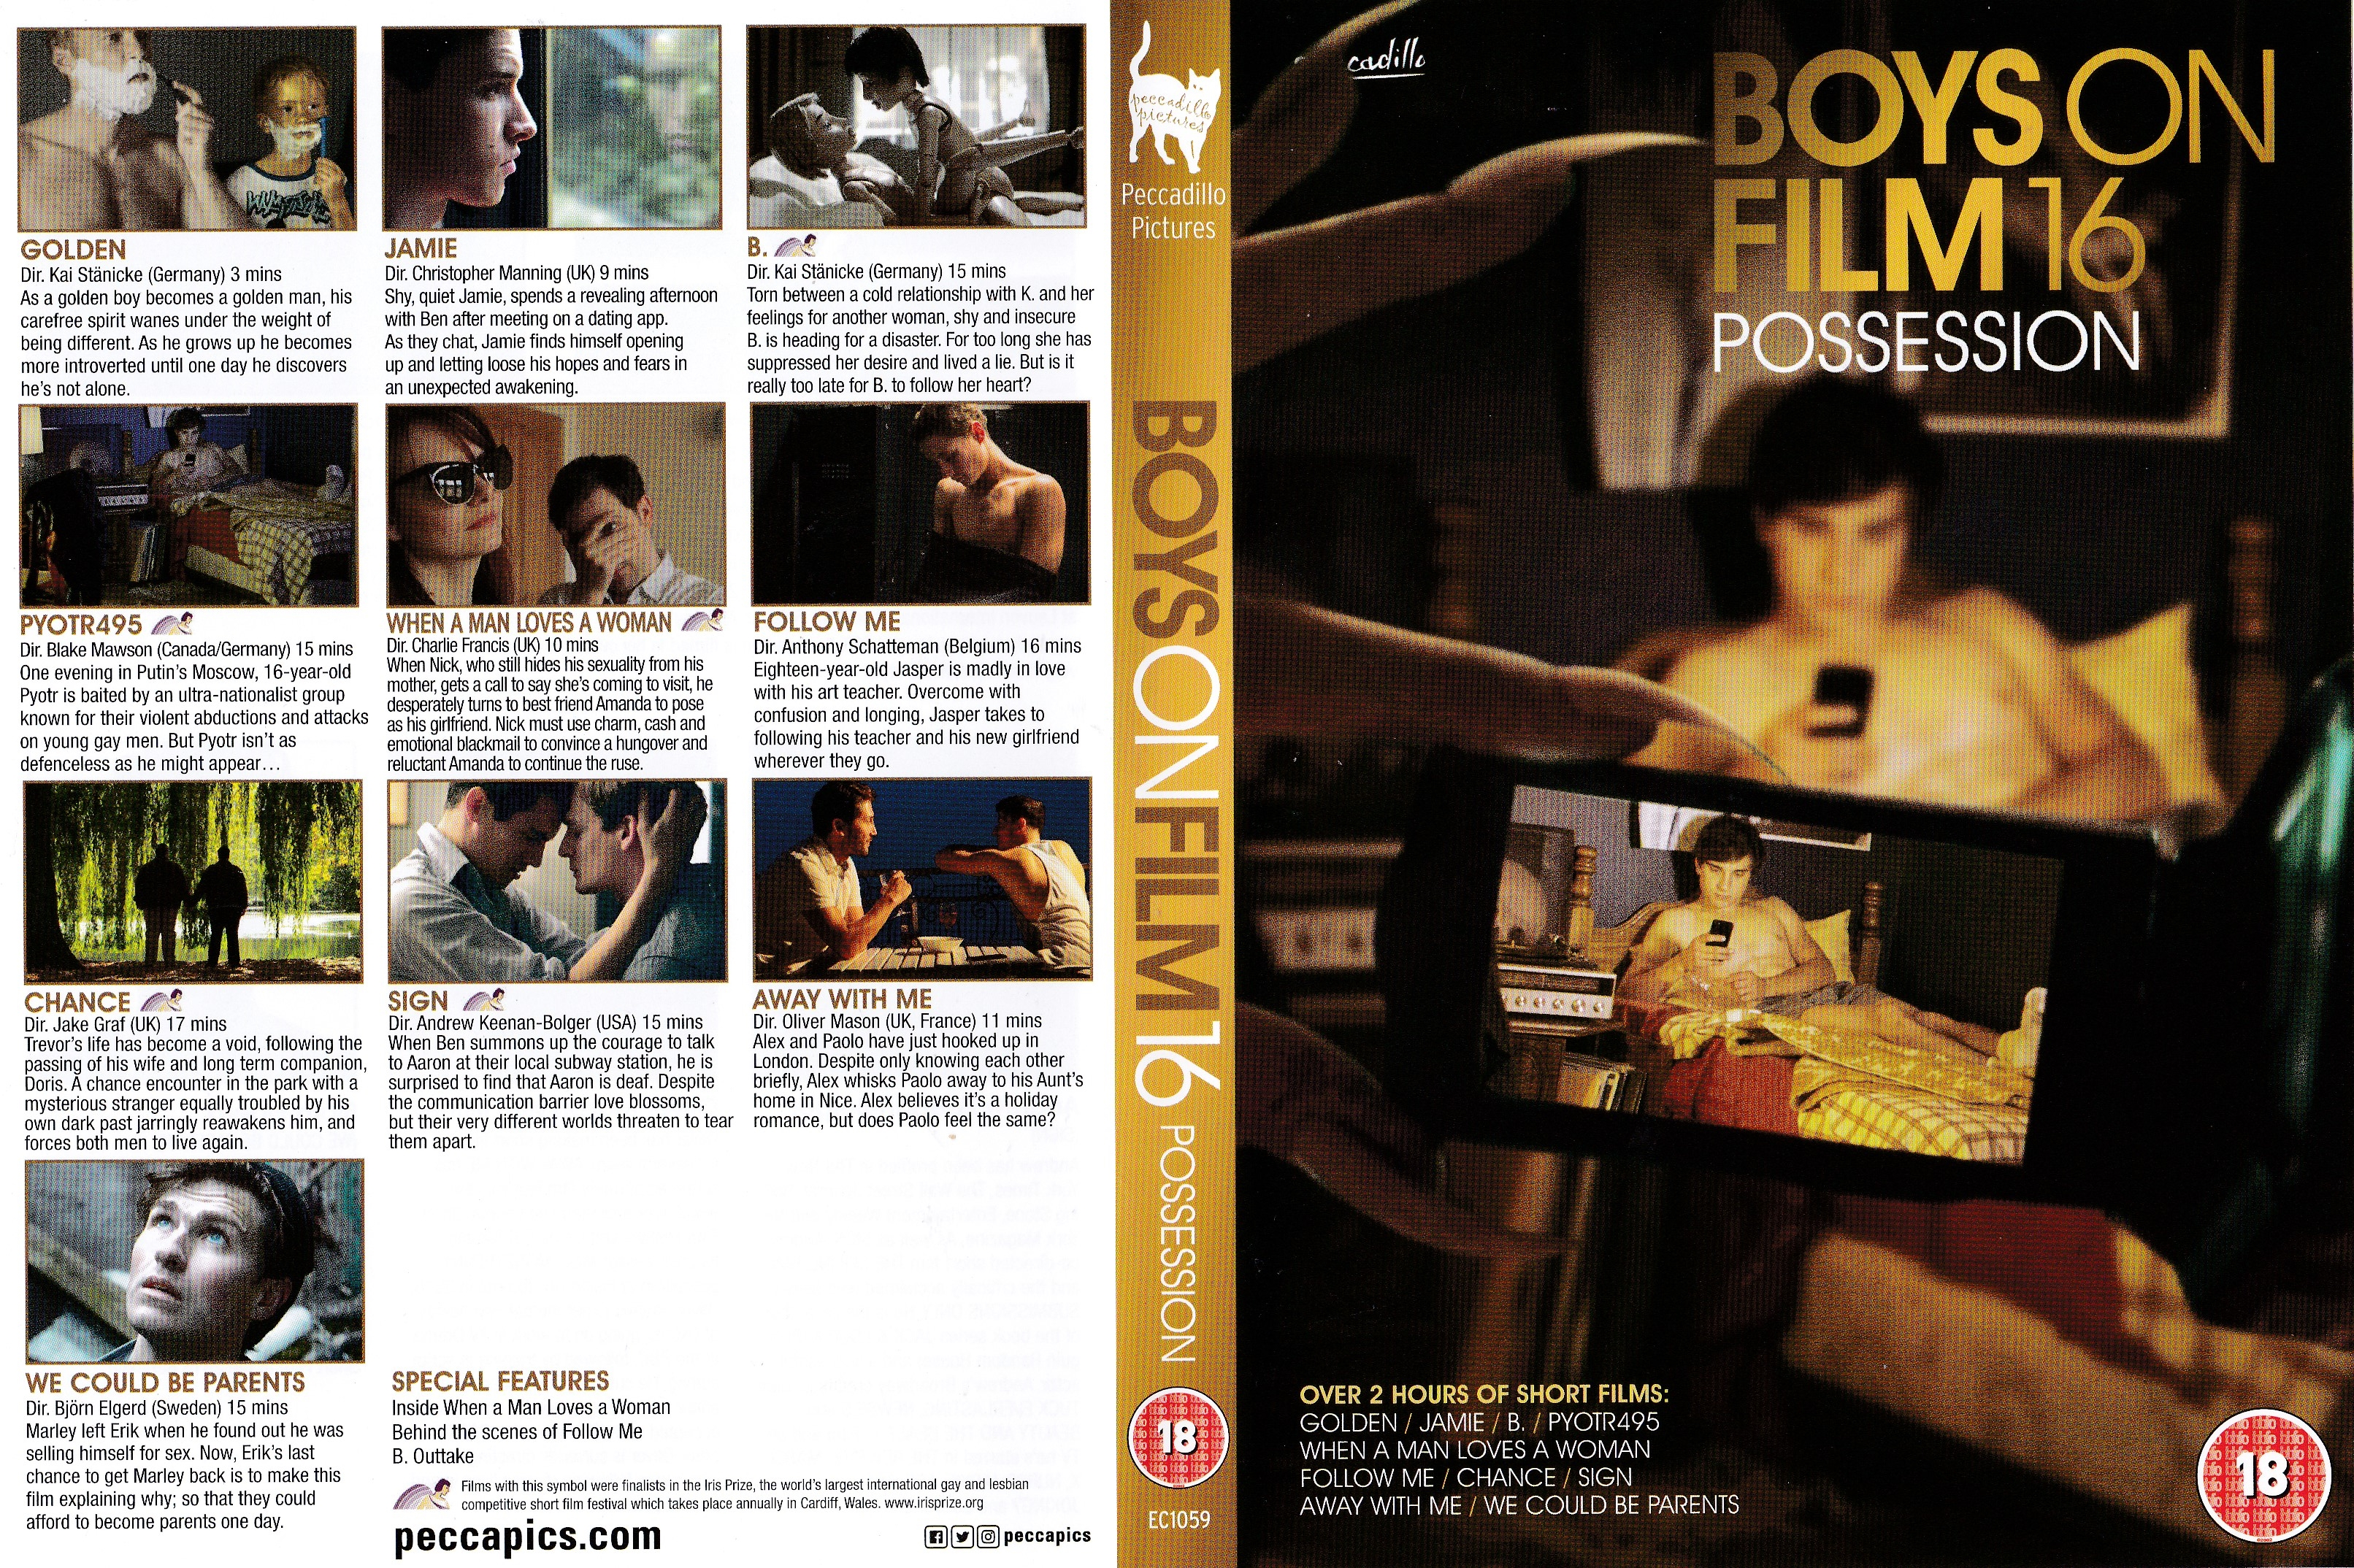 Boys On Film 16 Possession Front Cover